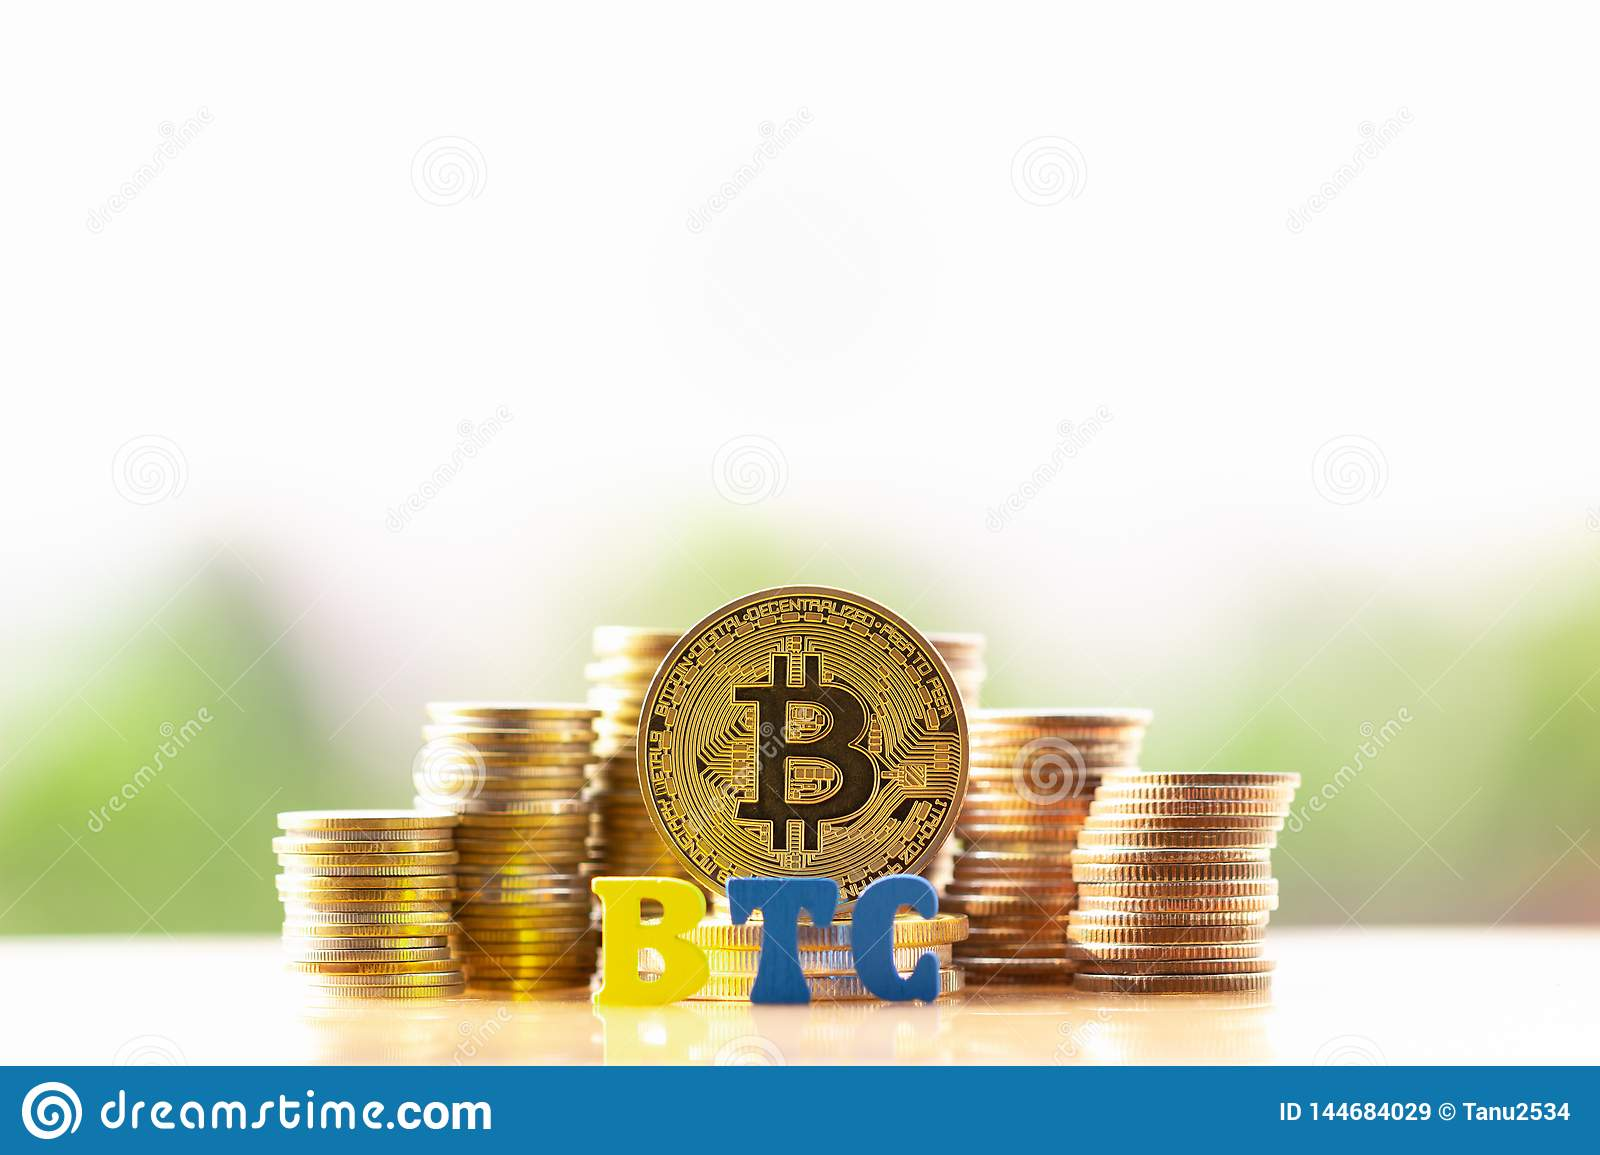 BitcoinBTC Golden And Wooden Block BTC On Greenery Nature Background